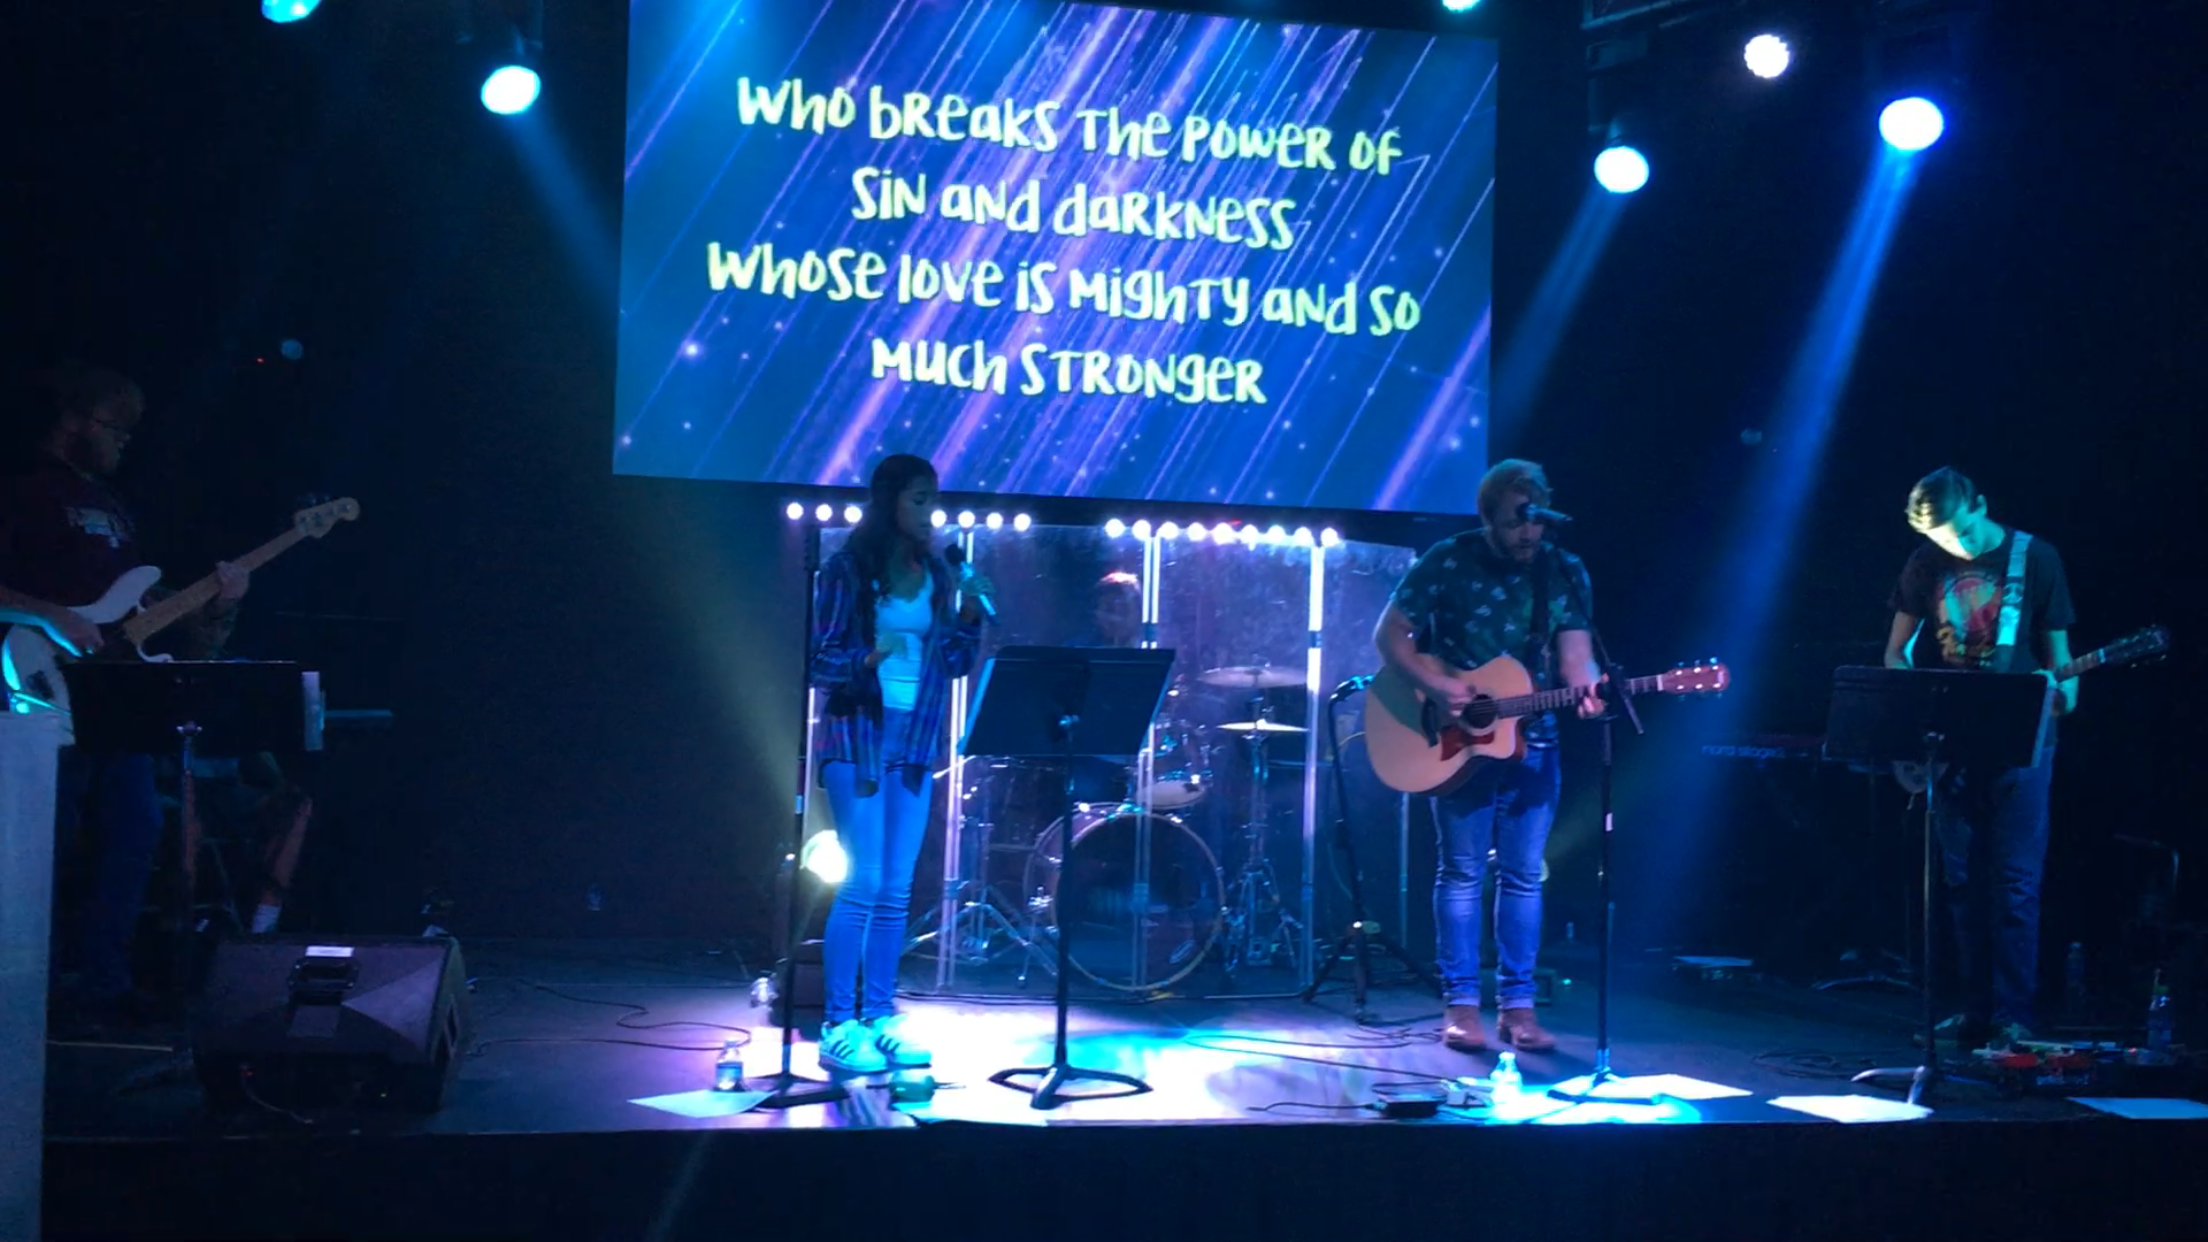 worship band image 1.PNG